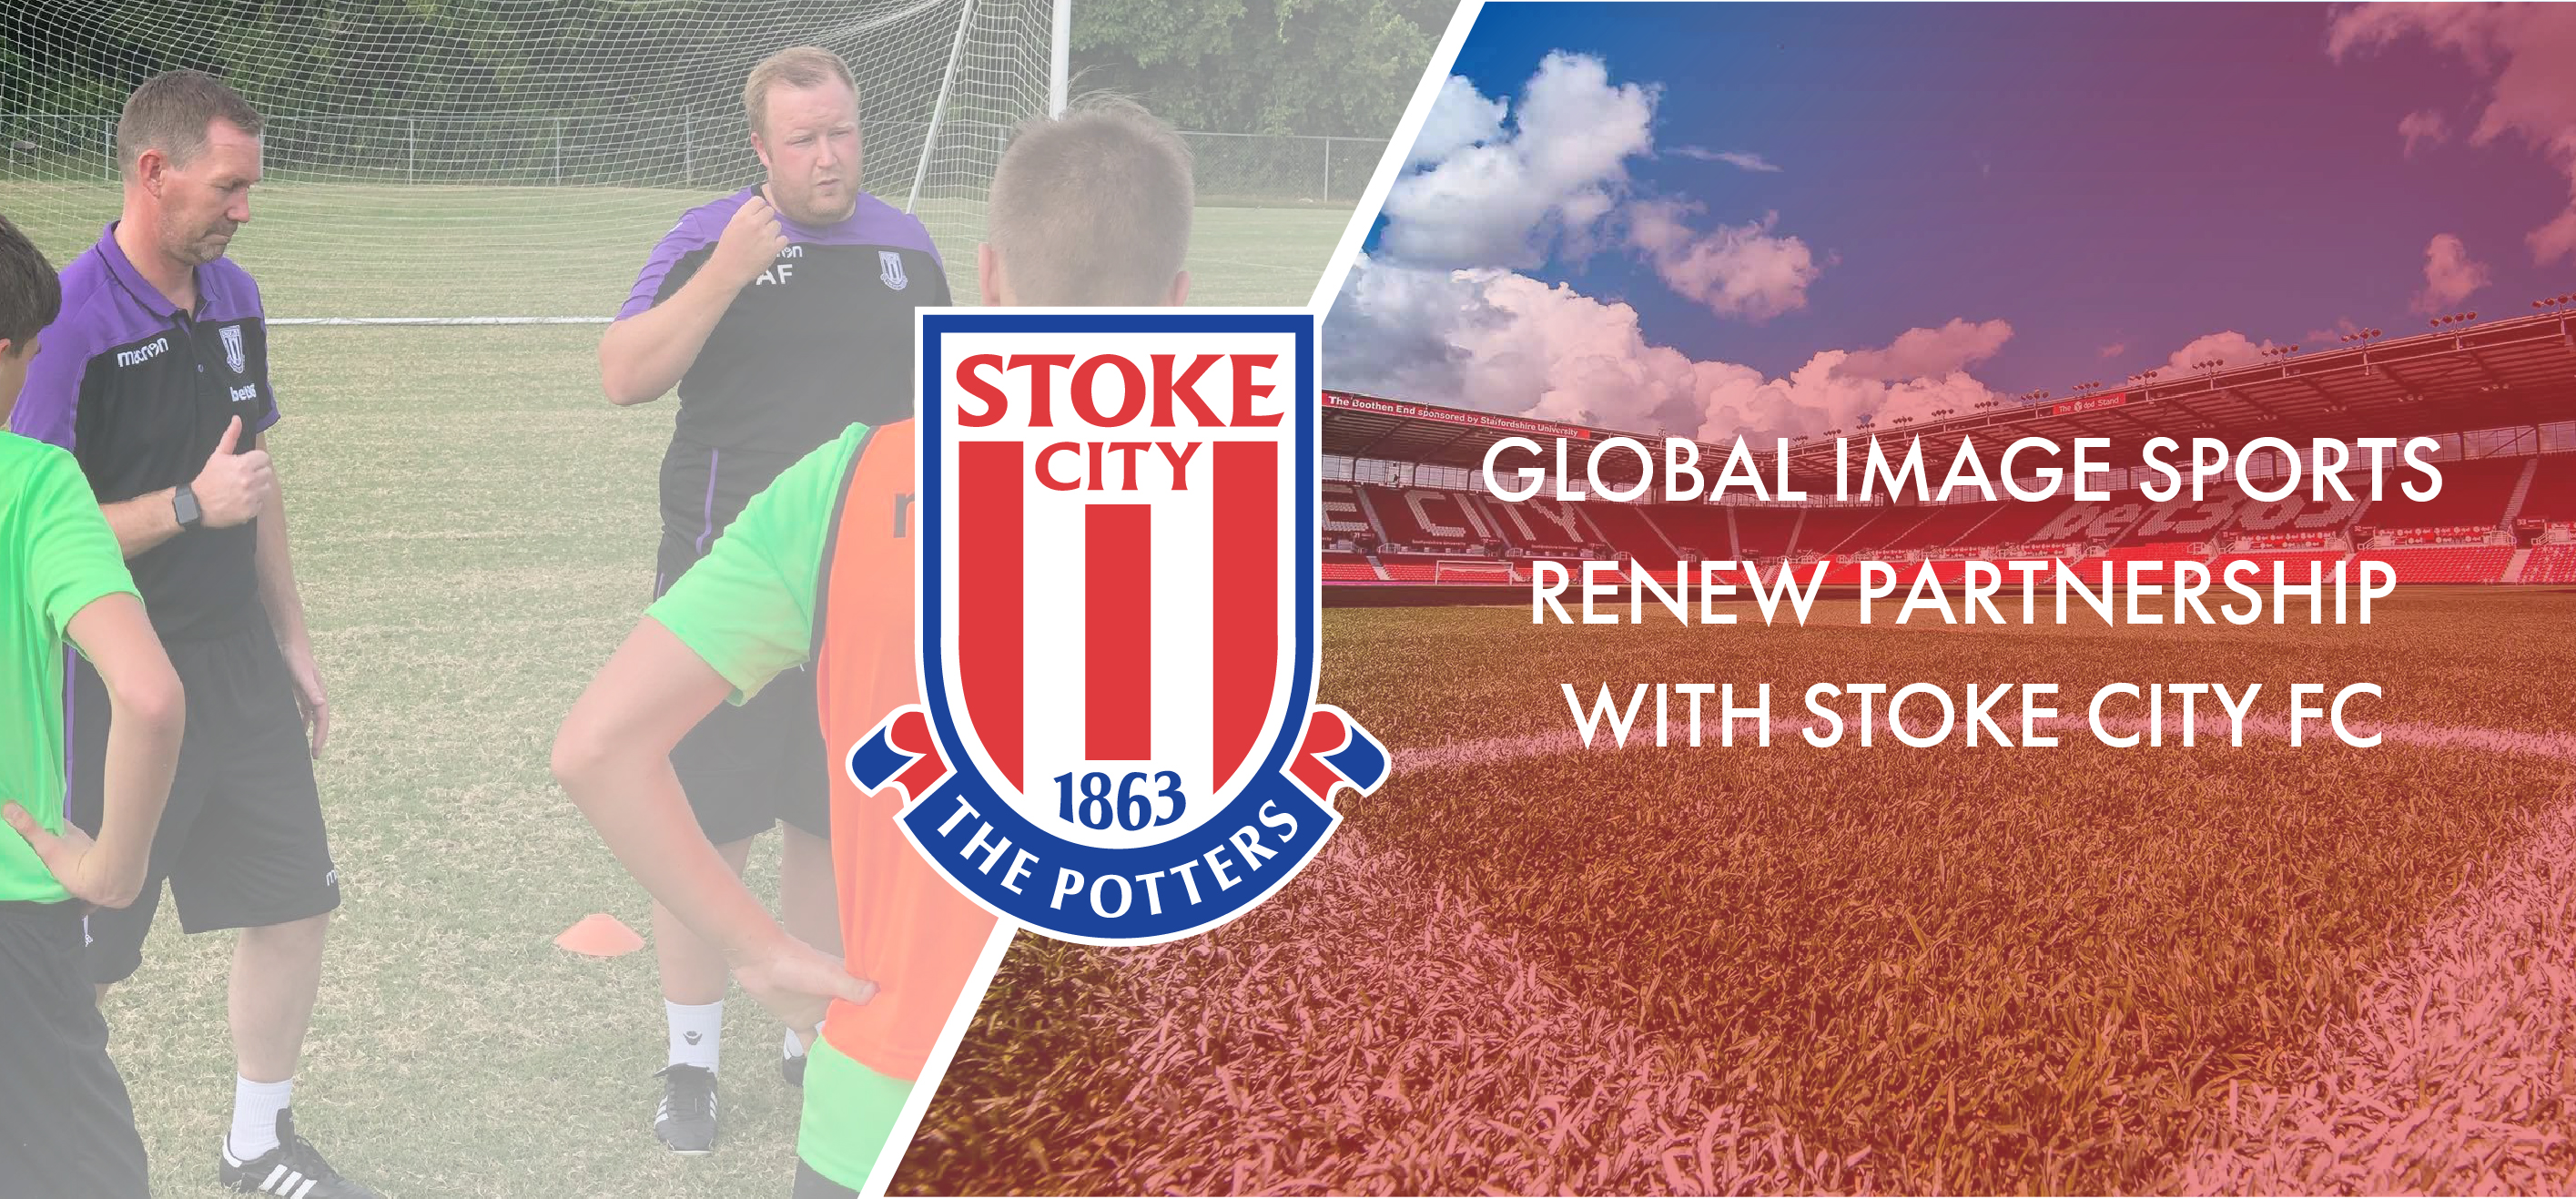 Stoke City FC renew Partnership with GIS